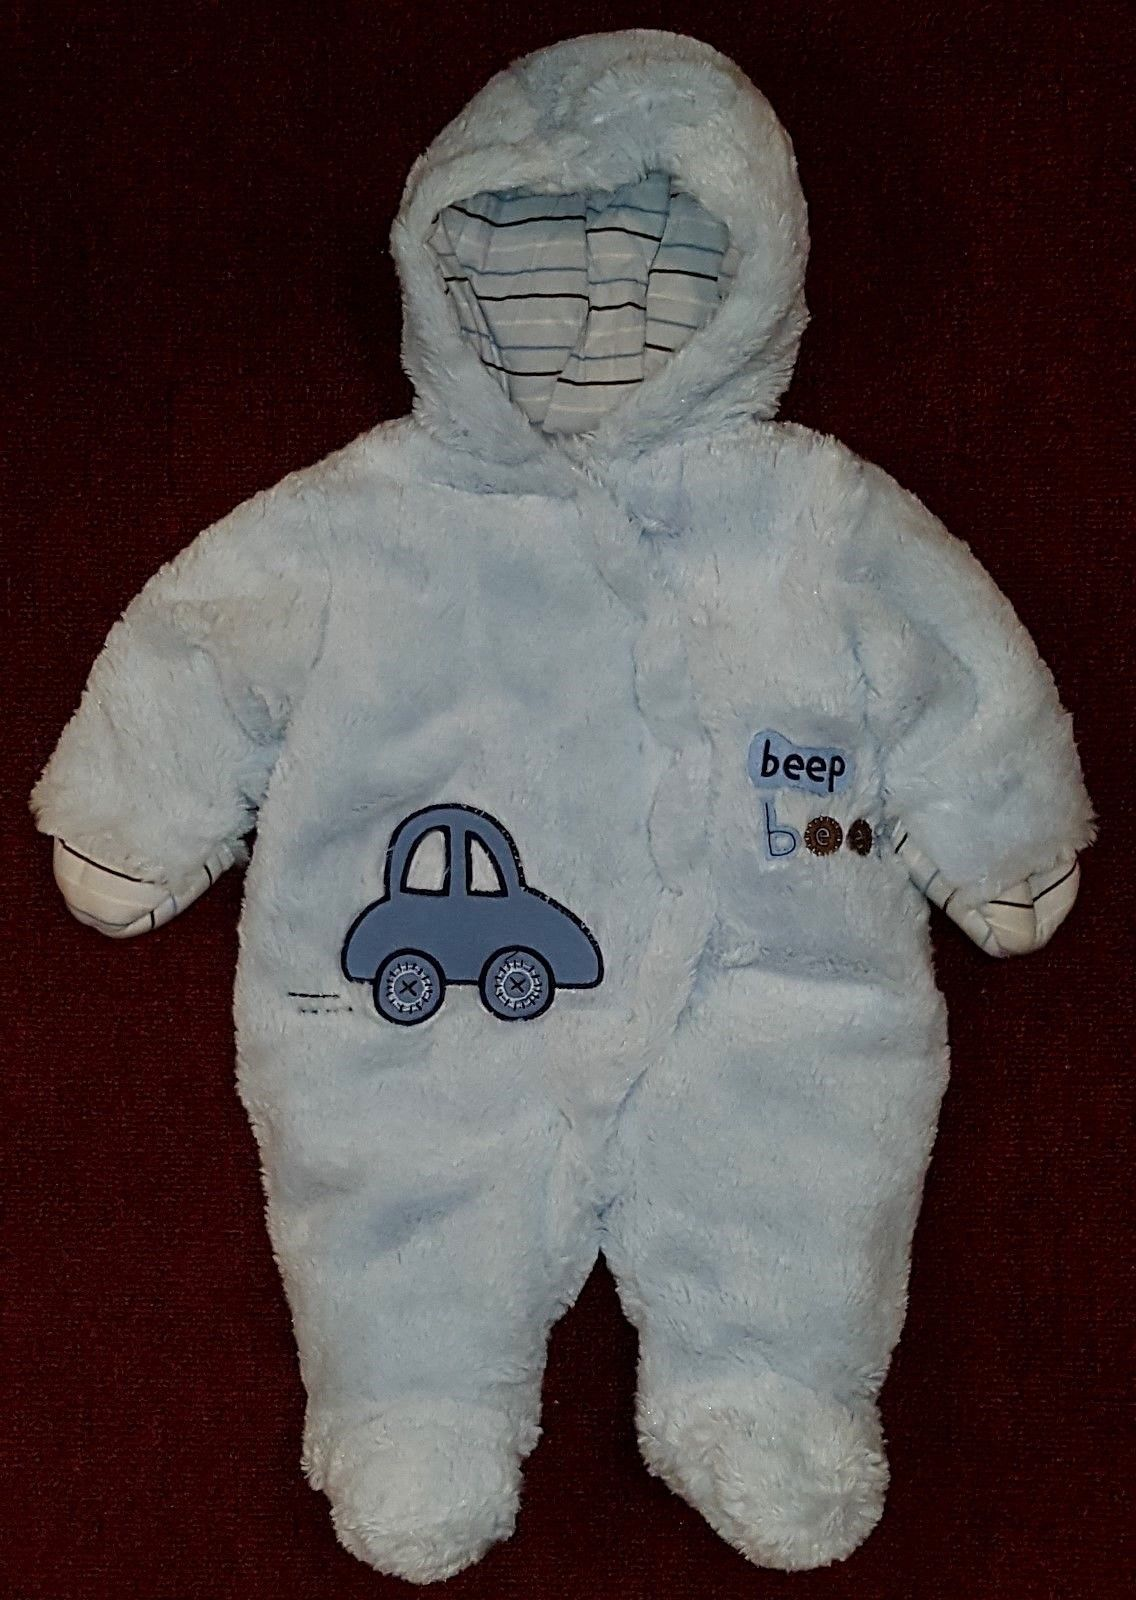 2a34469e5 Miniwear RN 67391 - Baby Blue Newborn/Infant and 50 similar items